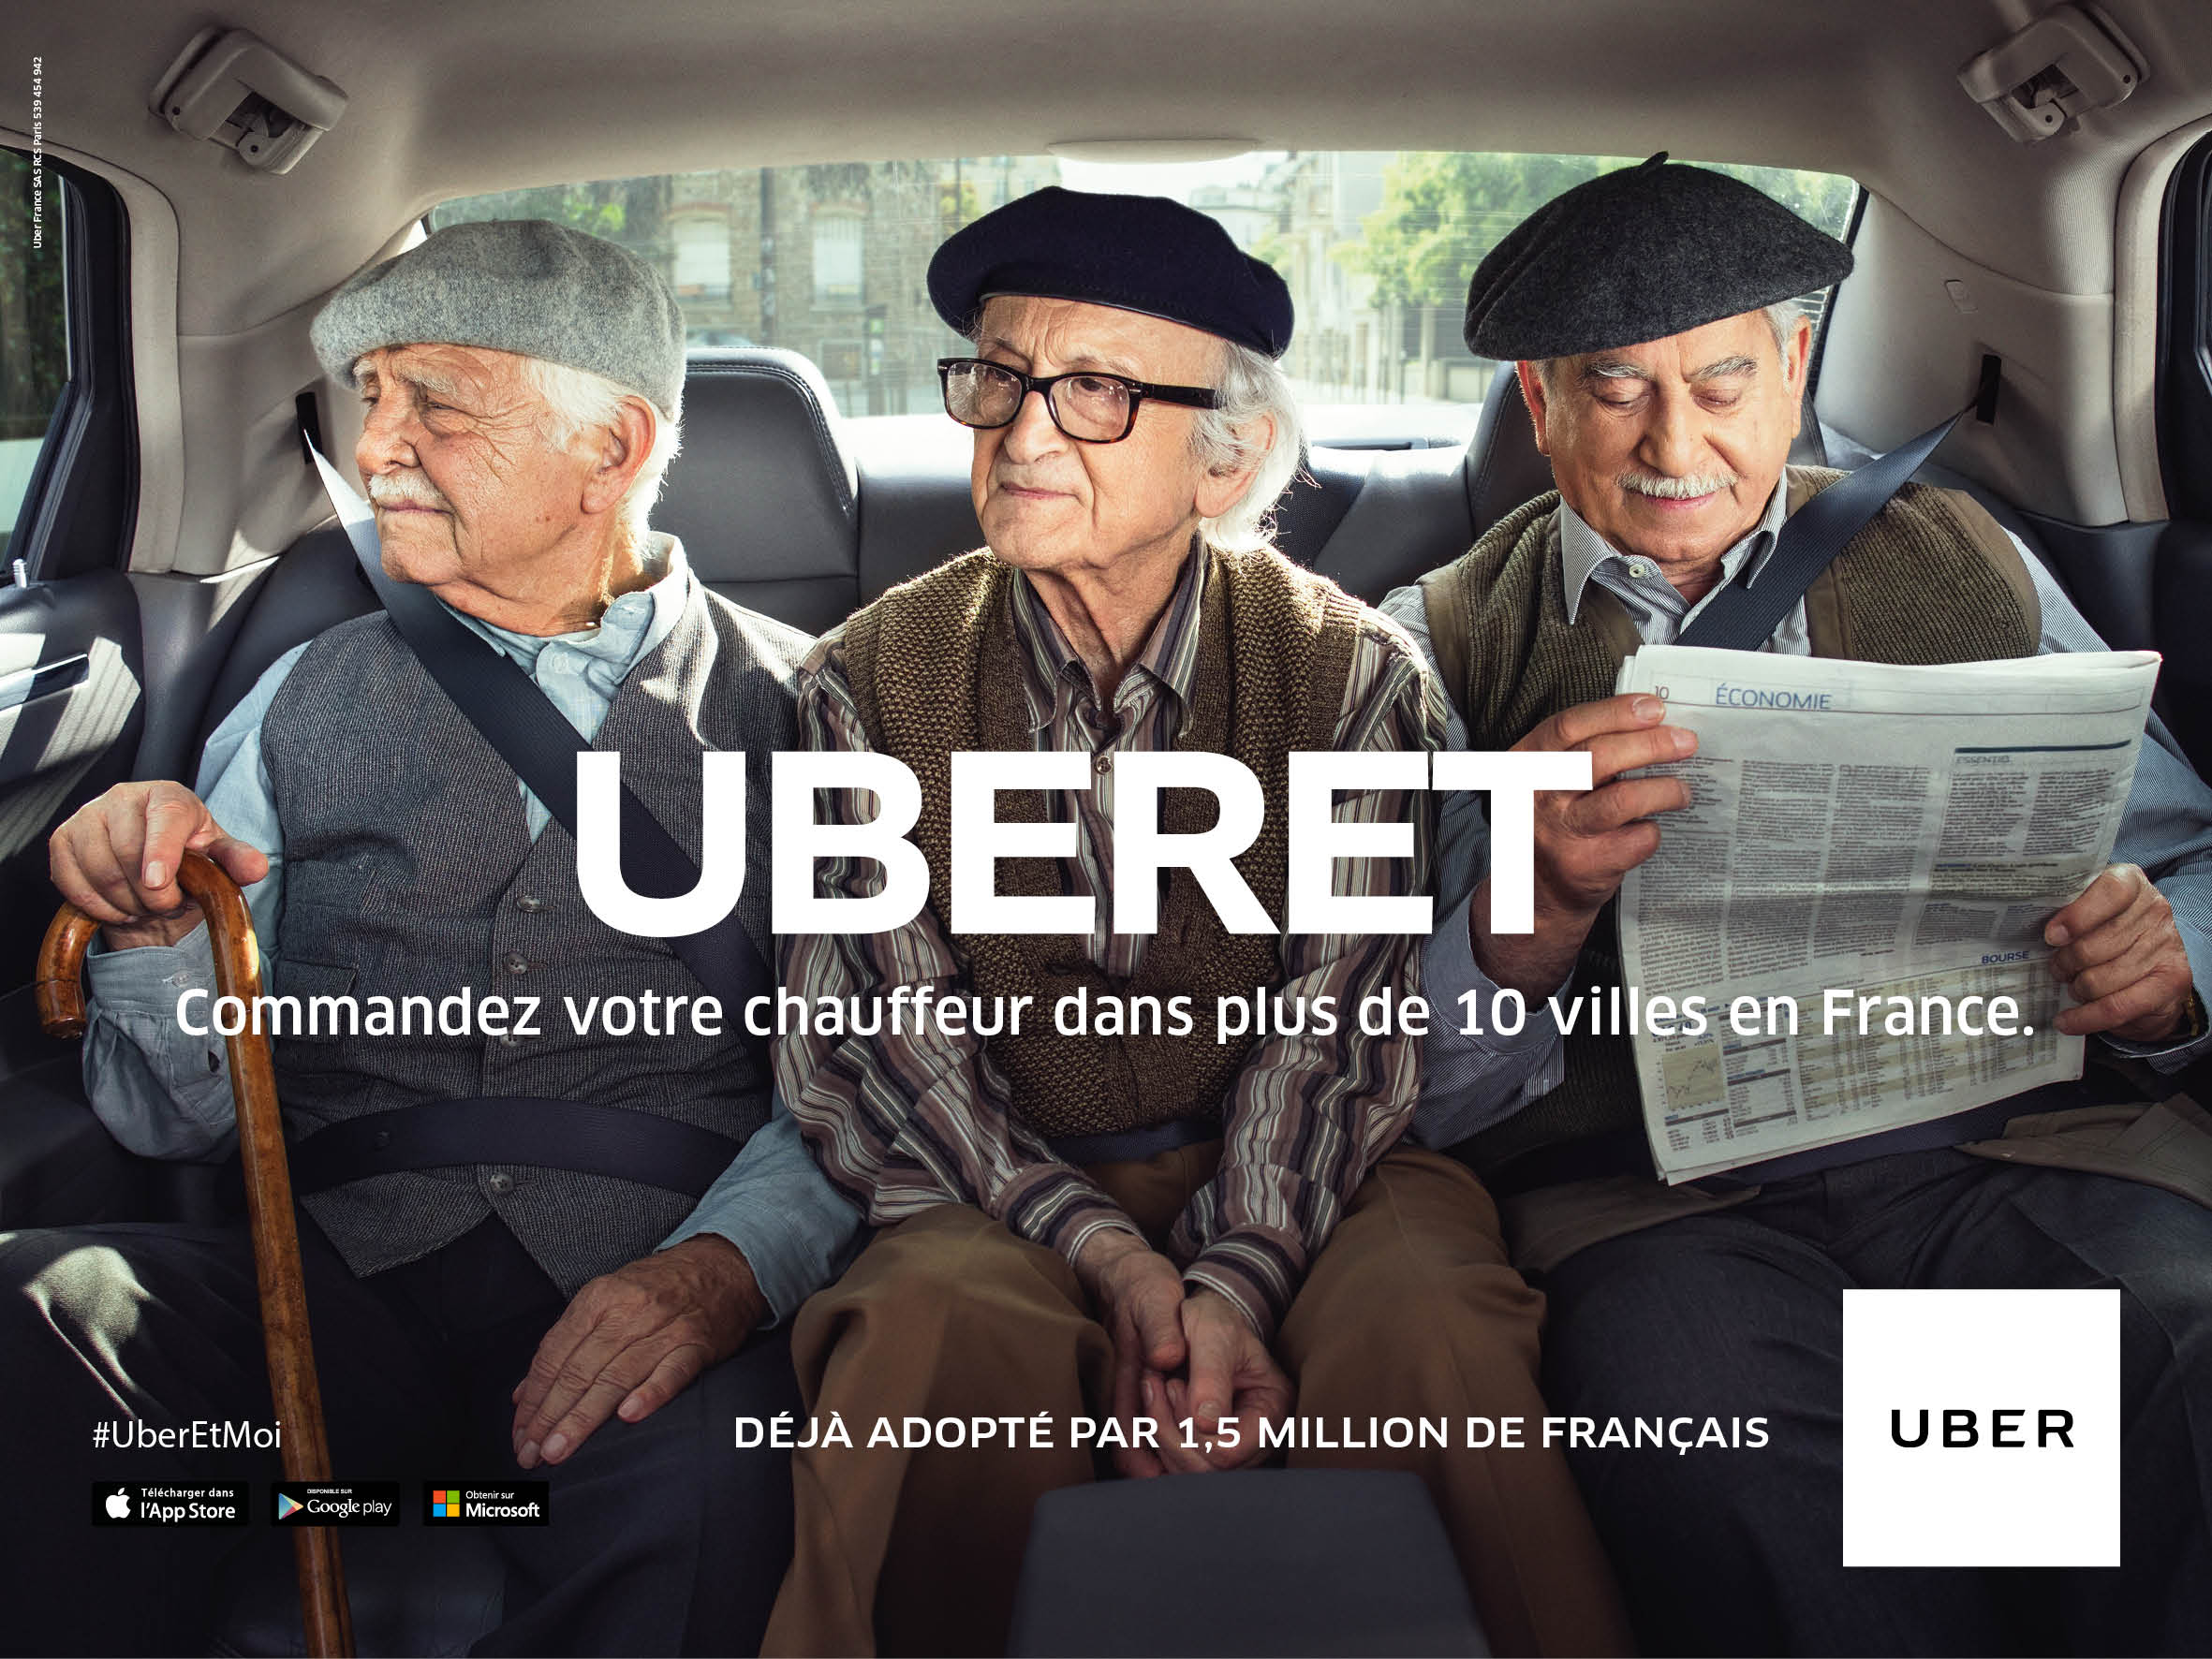 uber-france-publicite-marketing-application-utilisateurs-passagers-mars-2016-agence-marcel-publicis-3